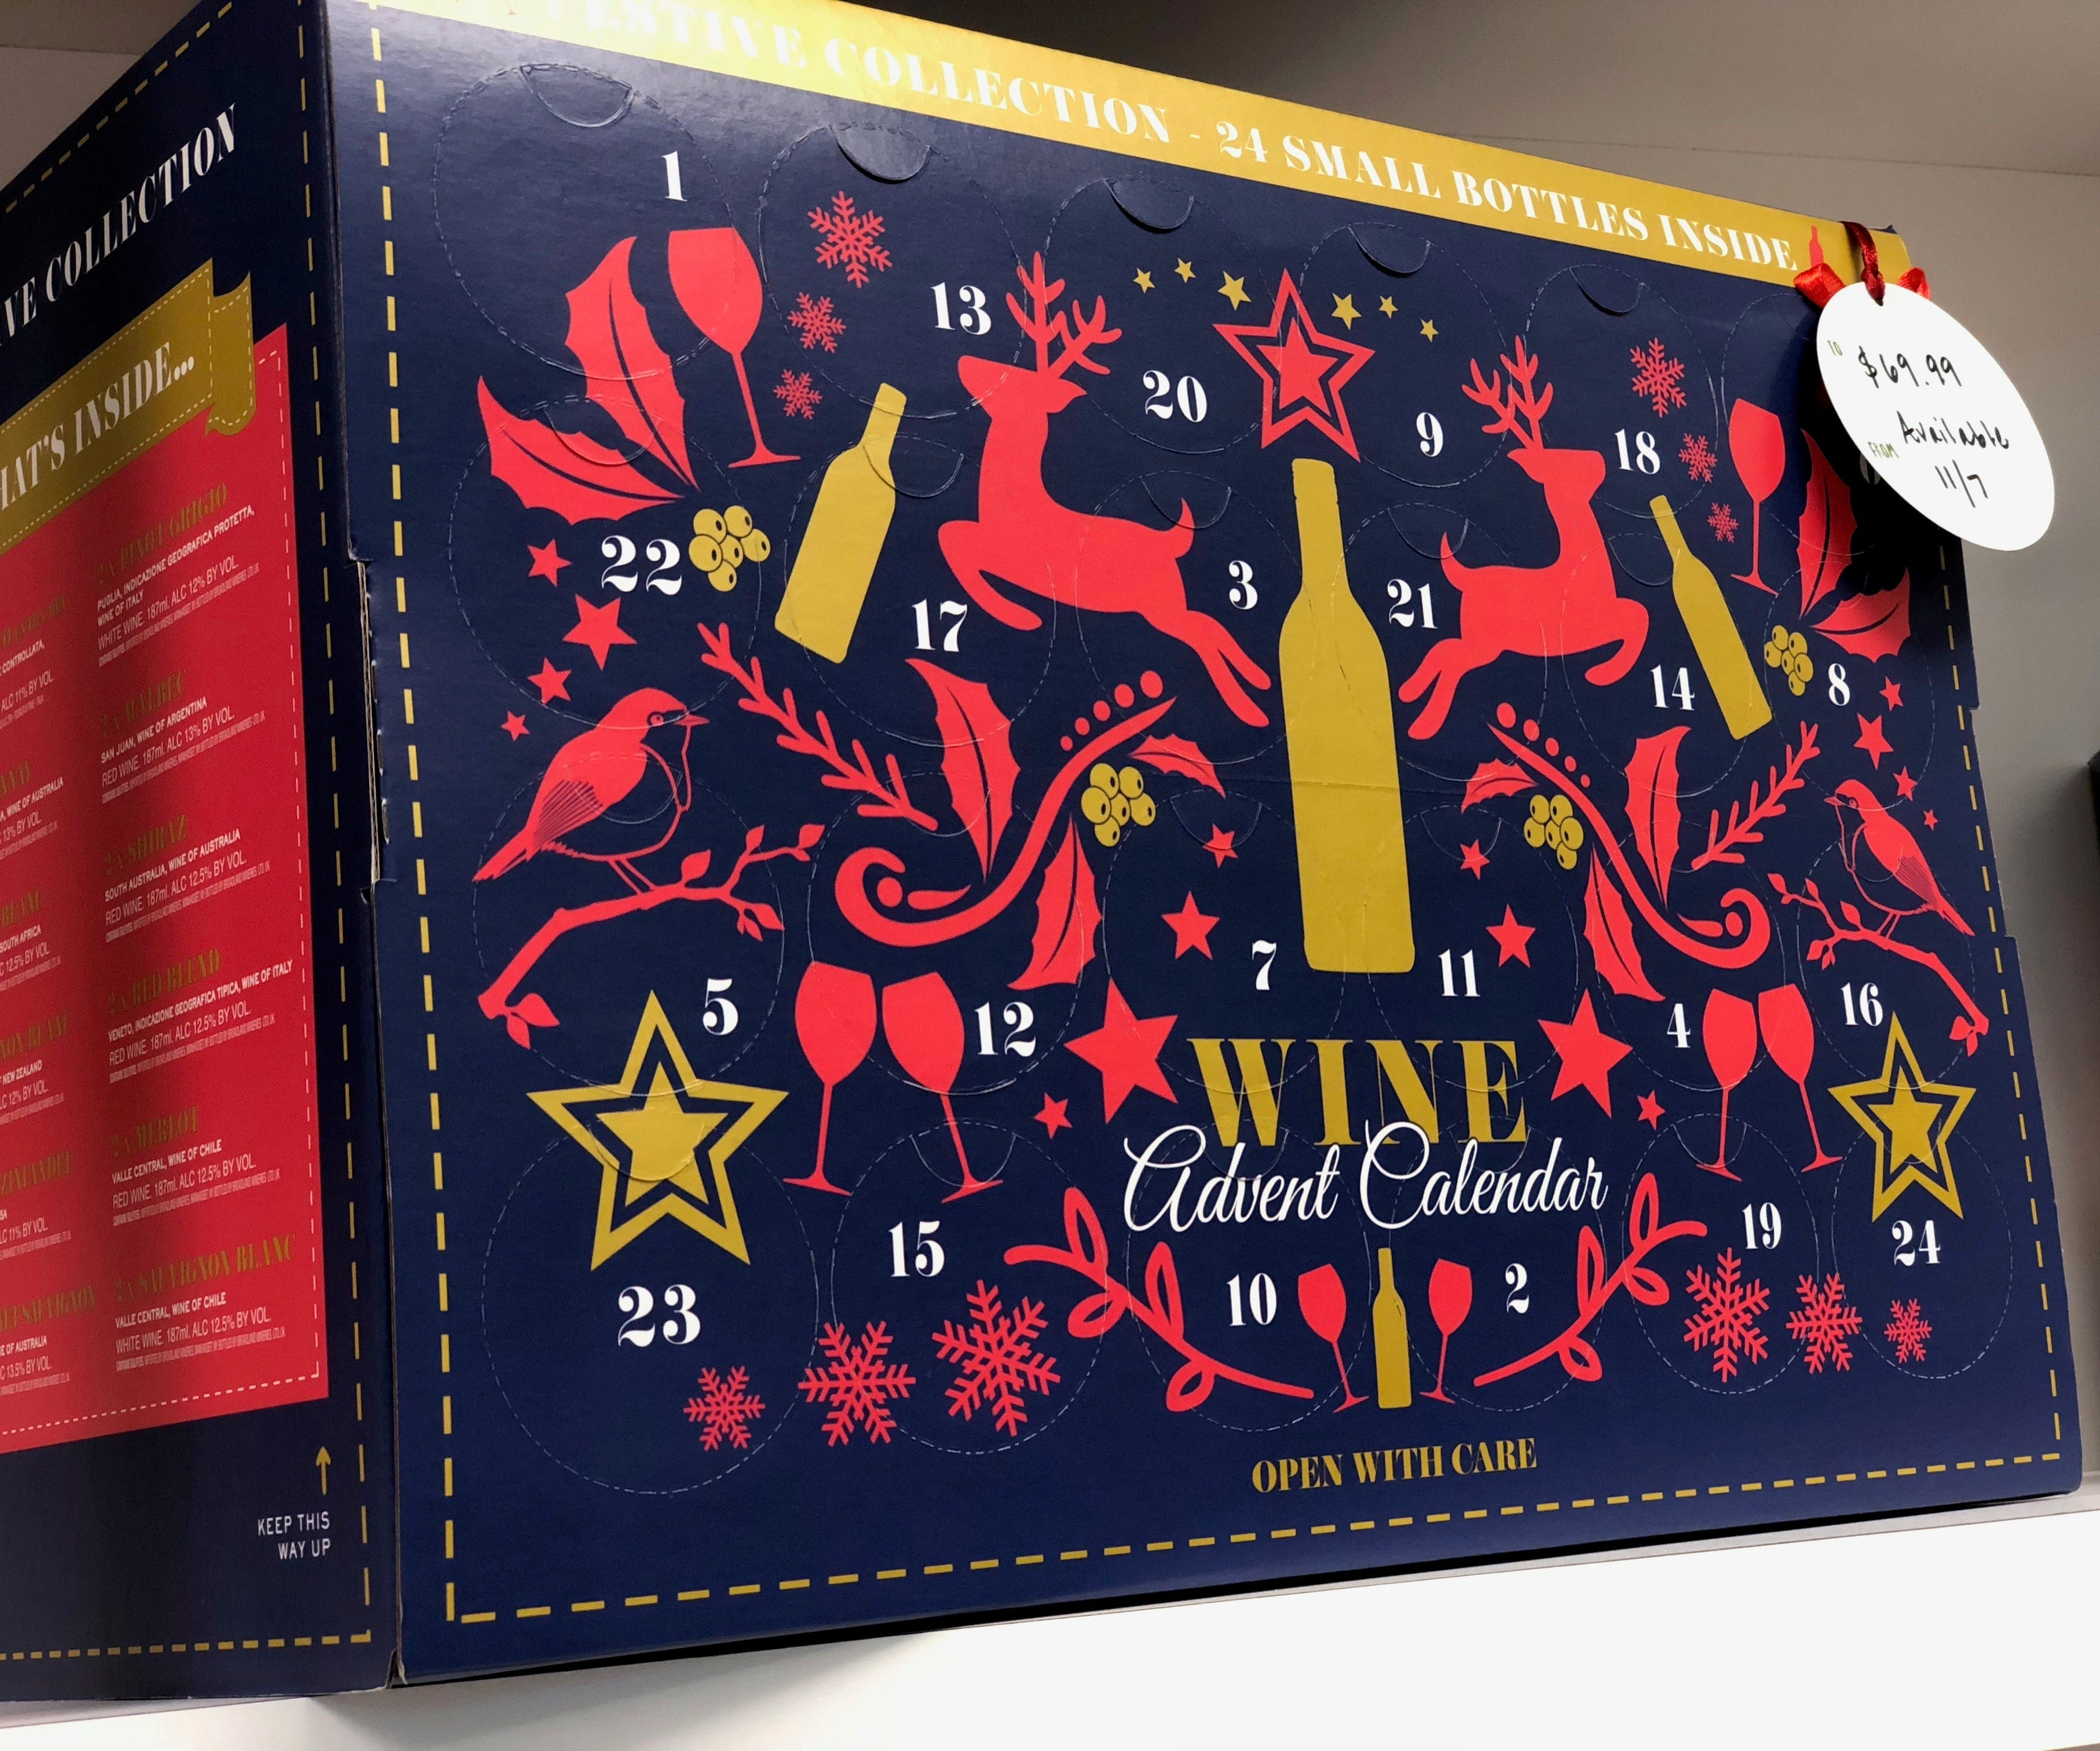 Cheers! Aldi supermarkets to offer limited wine Advent calendars in U.S. stores